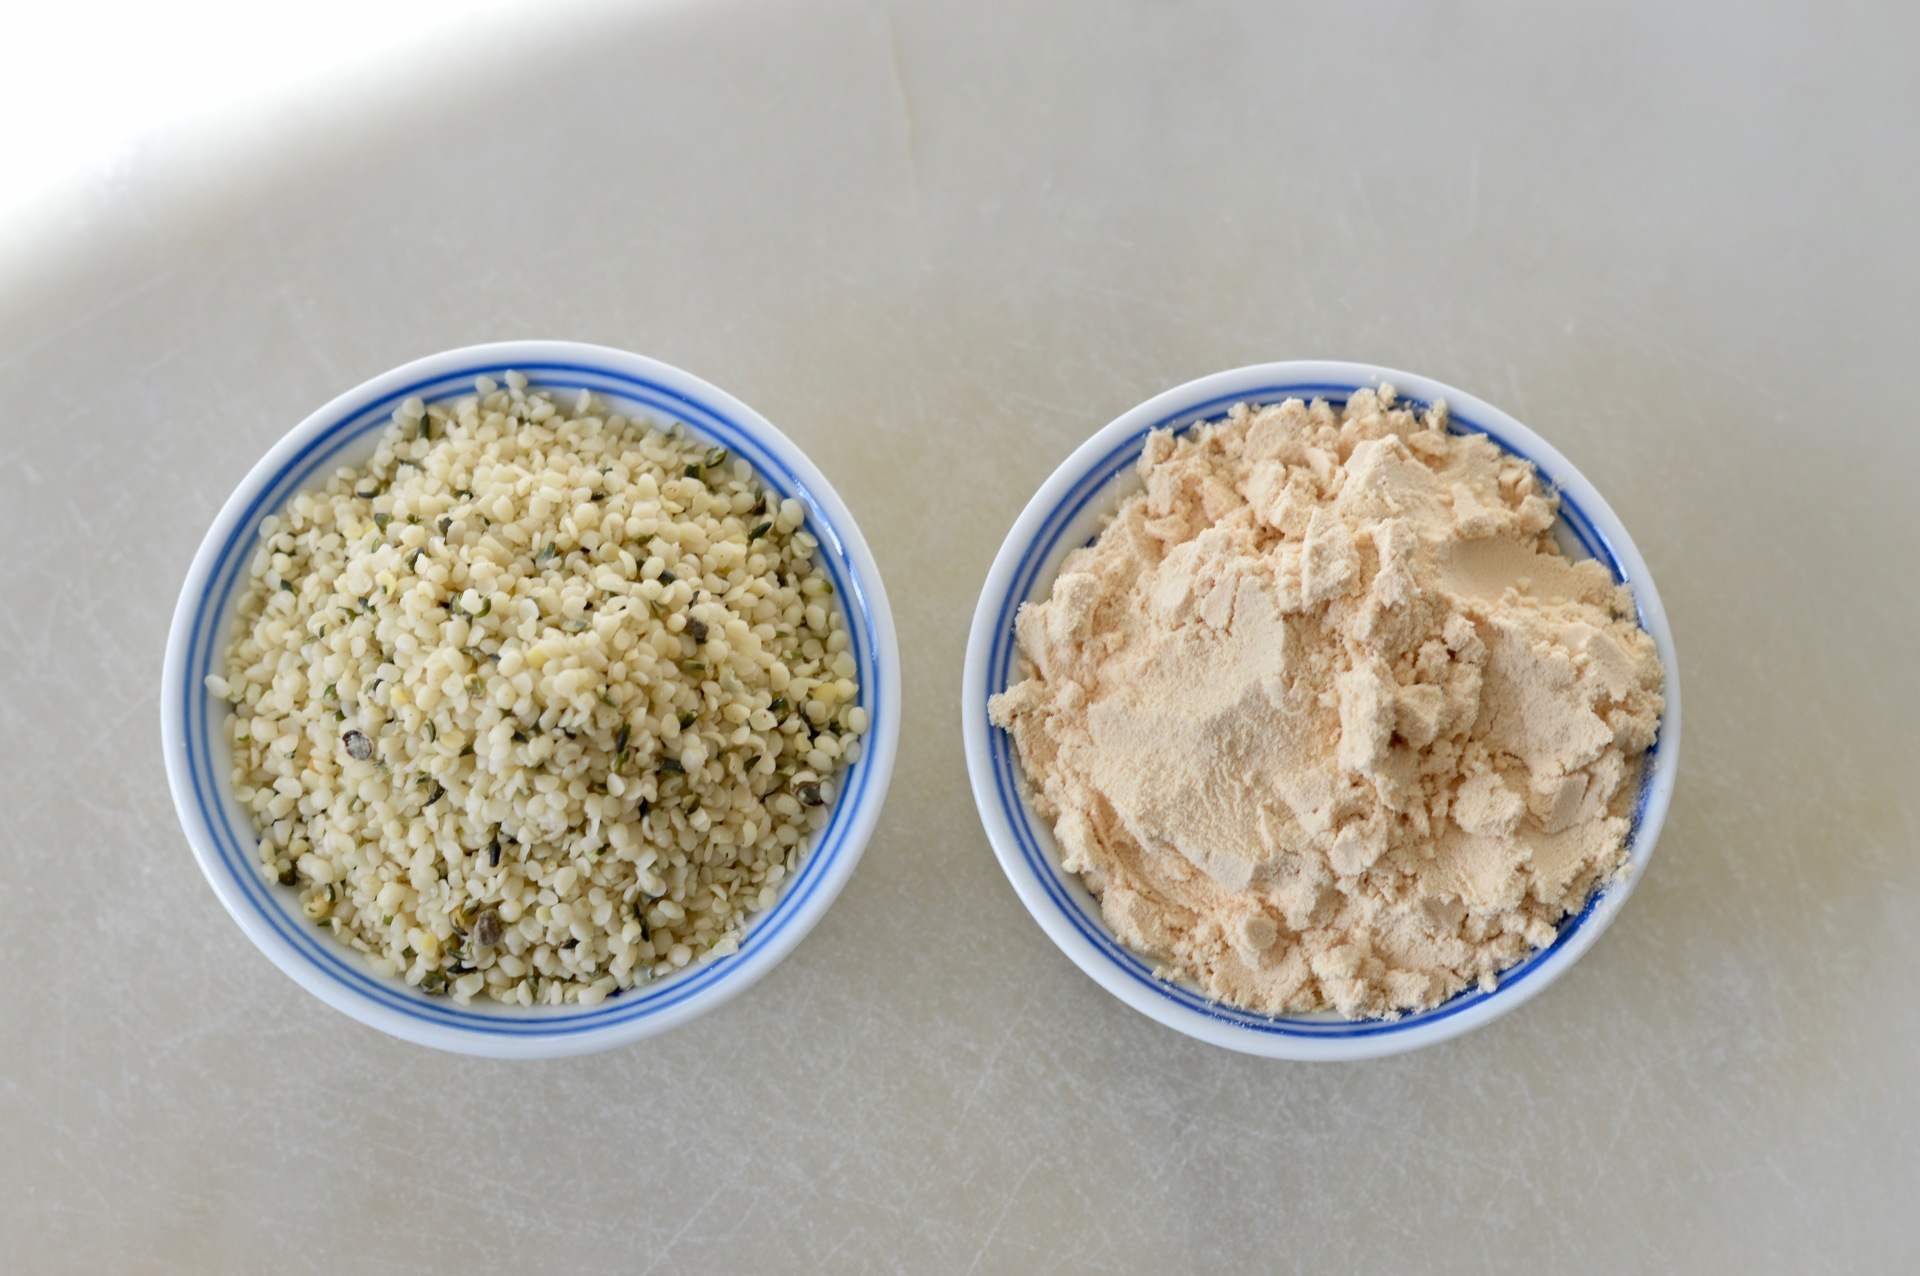 Hemp hearts to your left. Yellow pea protein powder to your right.